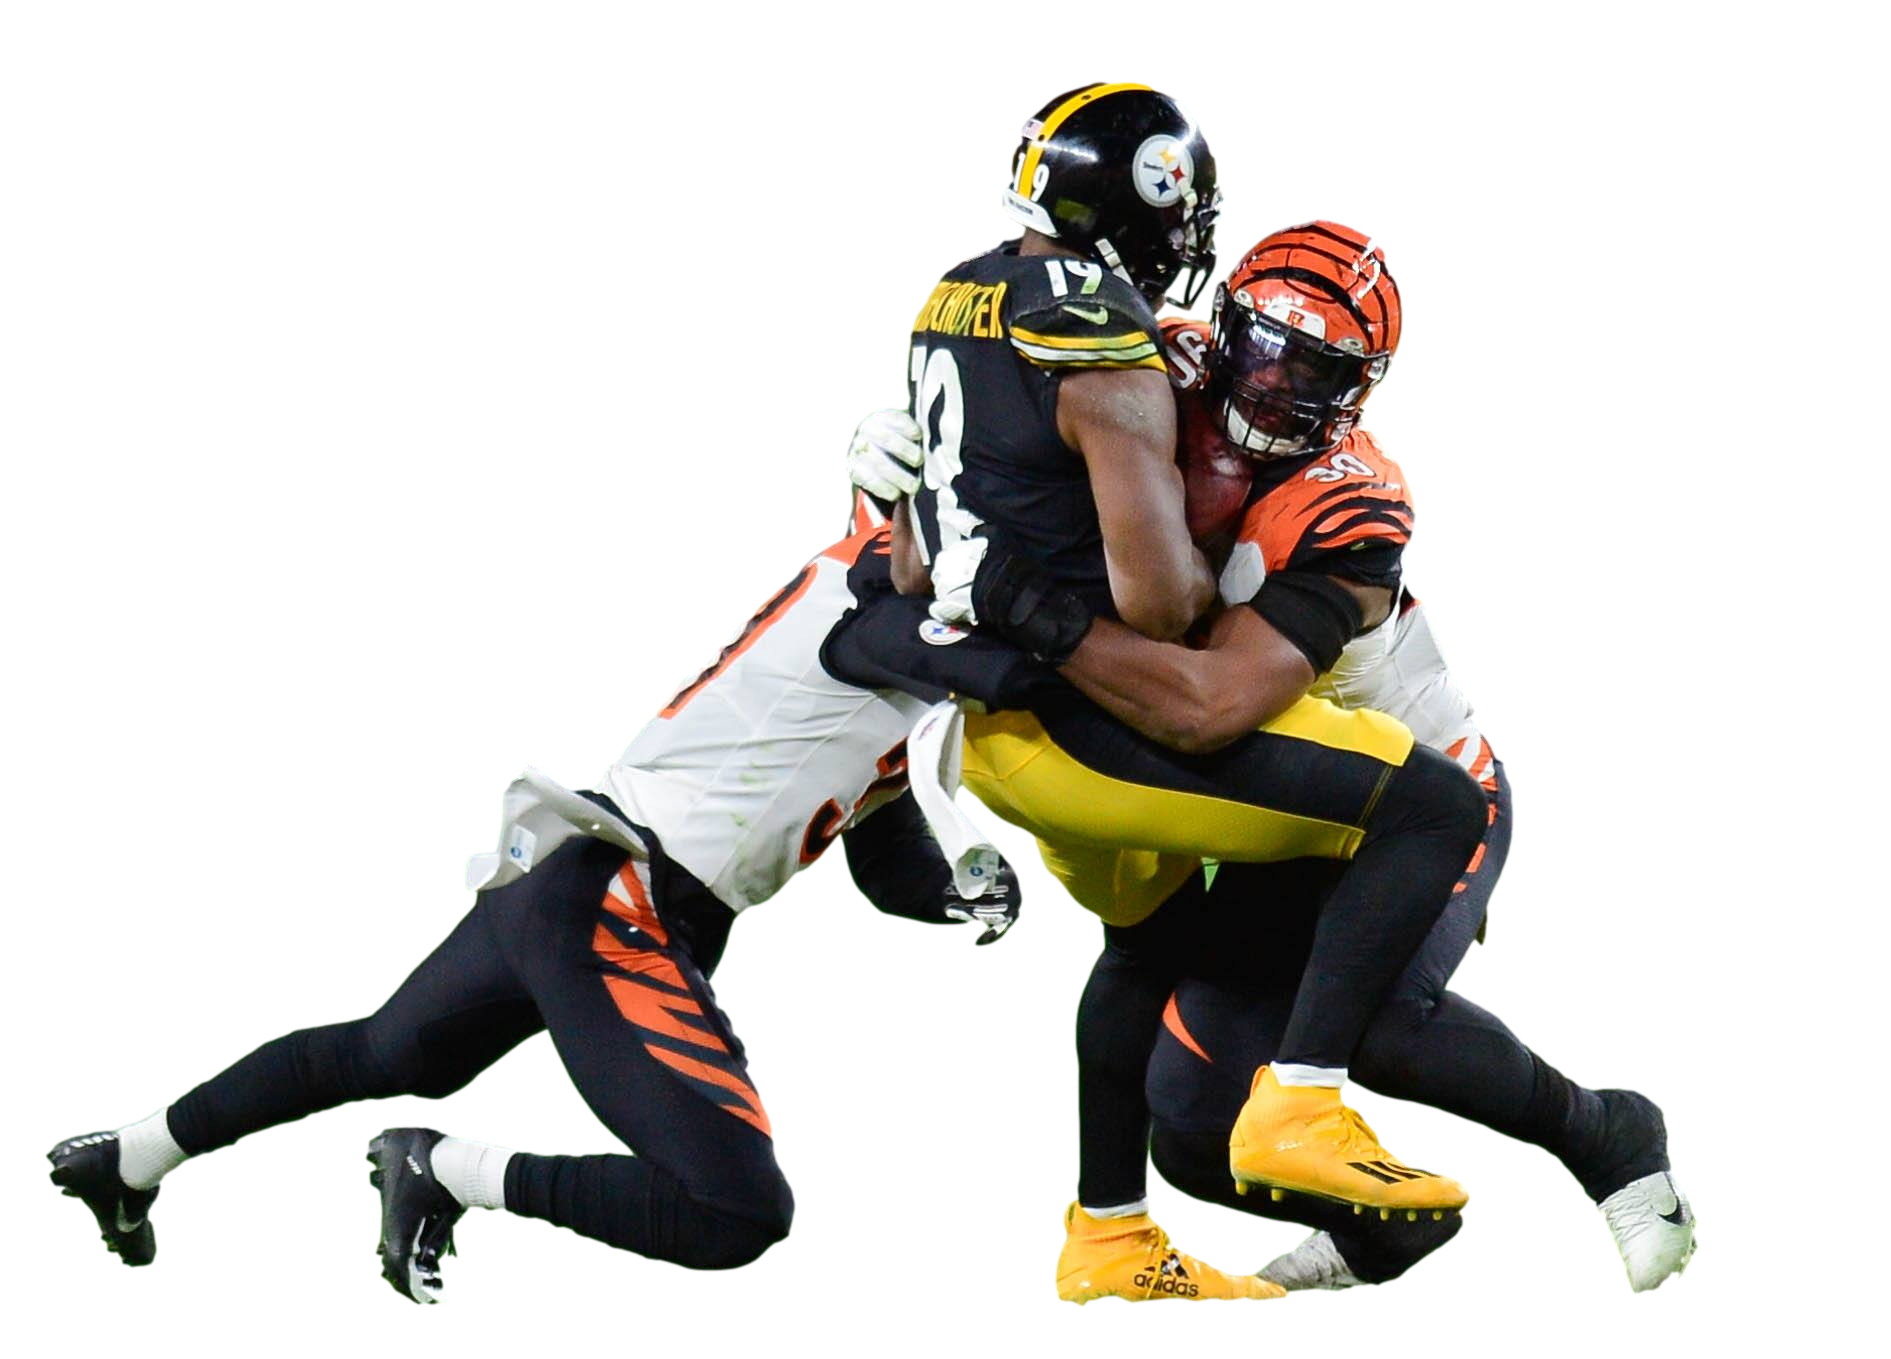 Football tackle of JuJu